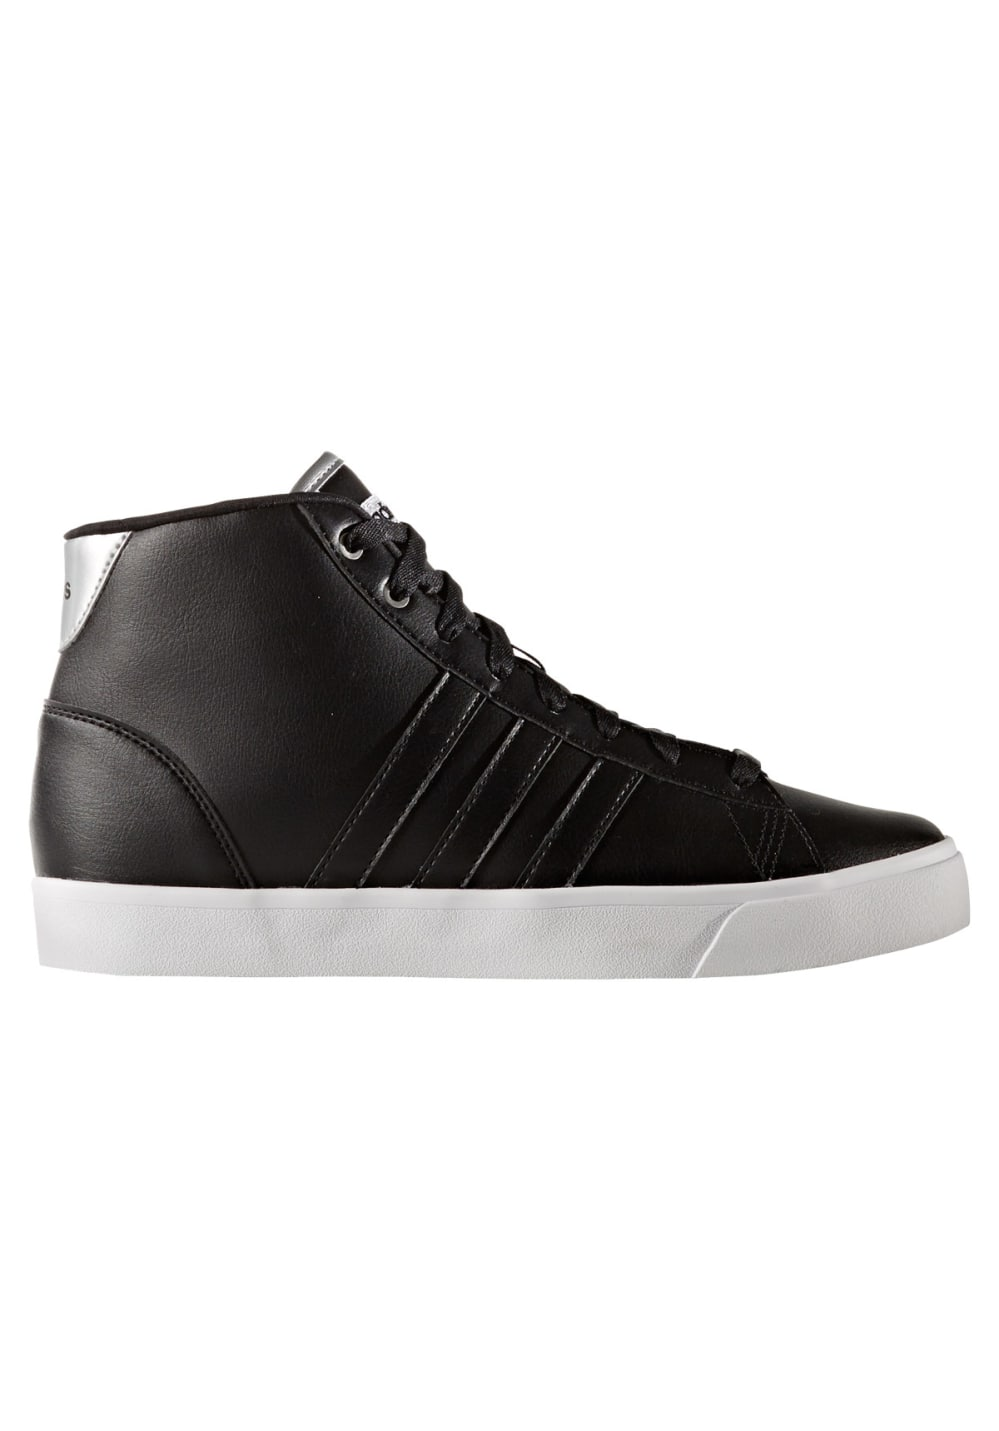 official photos 59598 8c2b6 ... adidas neo Cloudfoam Daily QT Mid - Zapatilla para Mujer - Negro.  Volver. 1 2 3. Previous